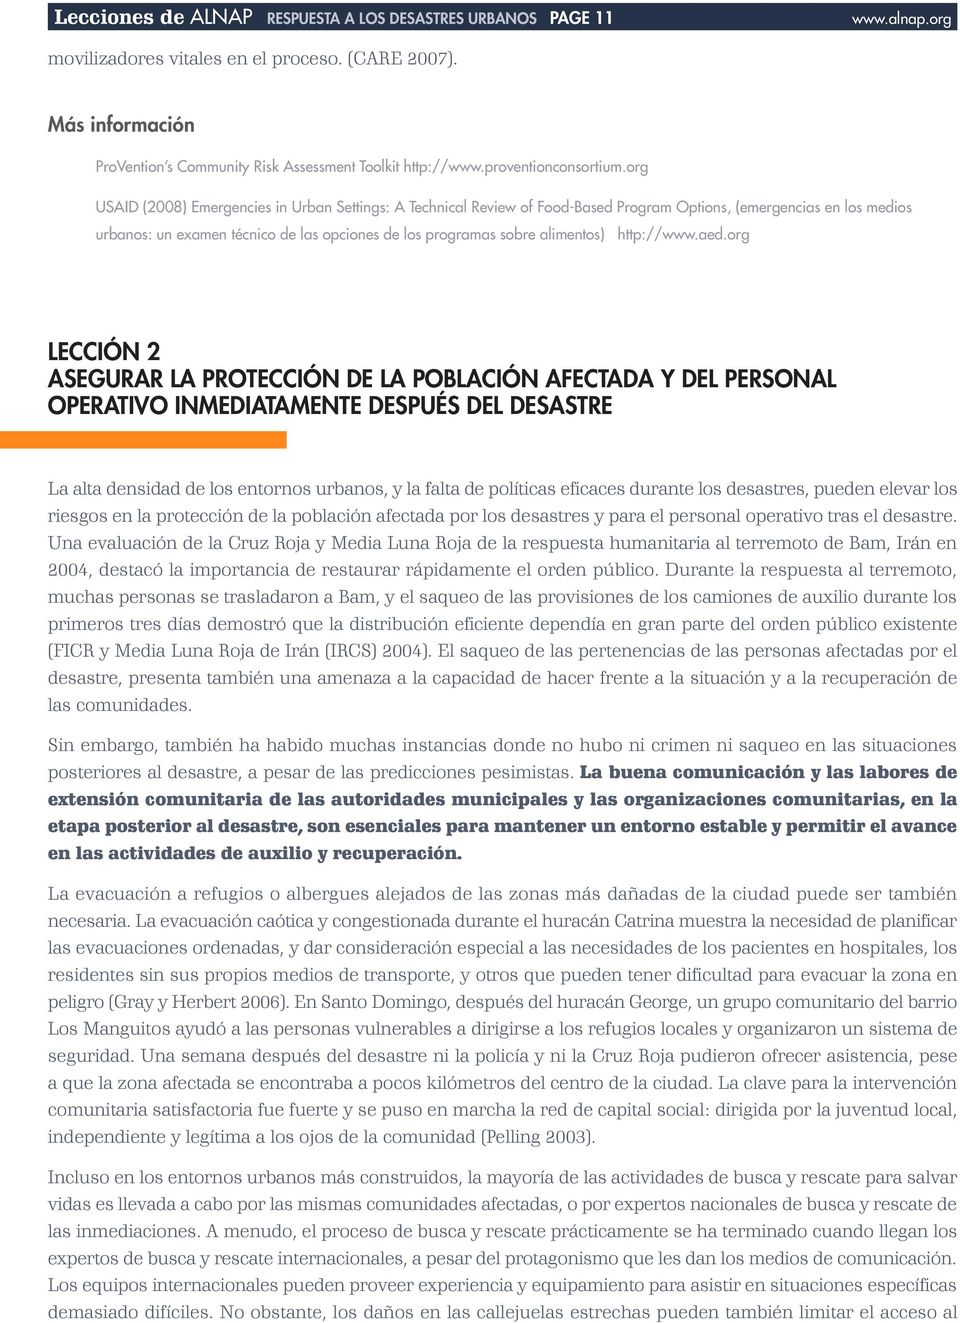 org USAID (2008) Emergencies in Urban Settings: A Technical Review of Food-Based Program Options, (emergencias en los medios urbanos: un examen técnico de las opciones de los programas sobre